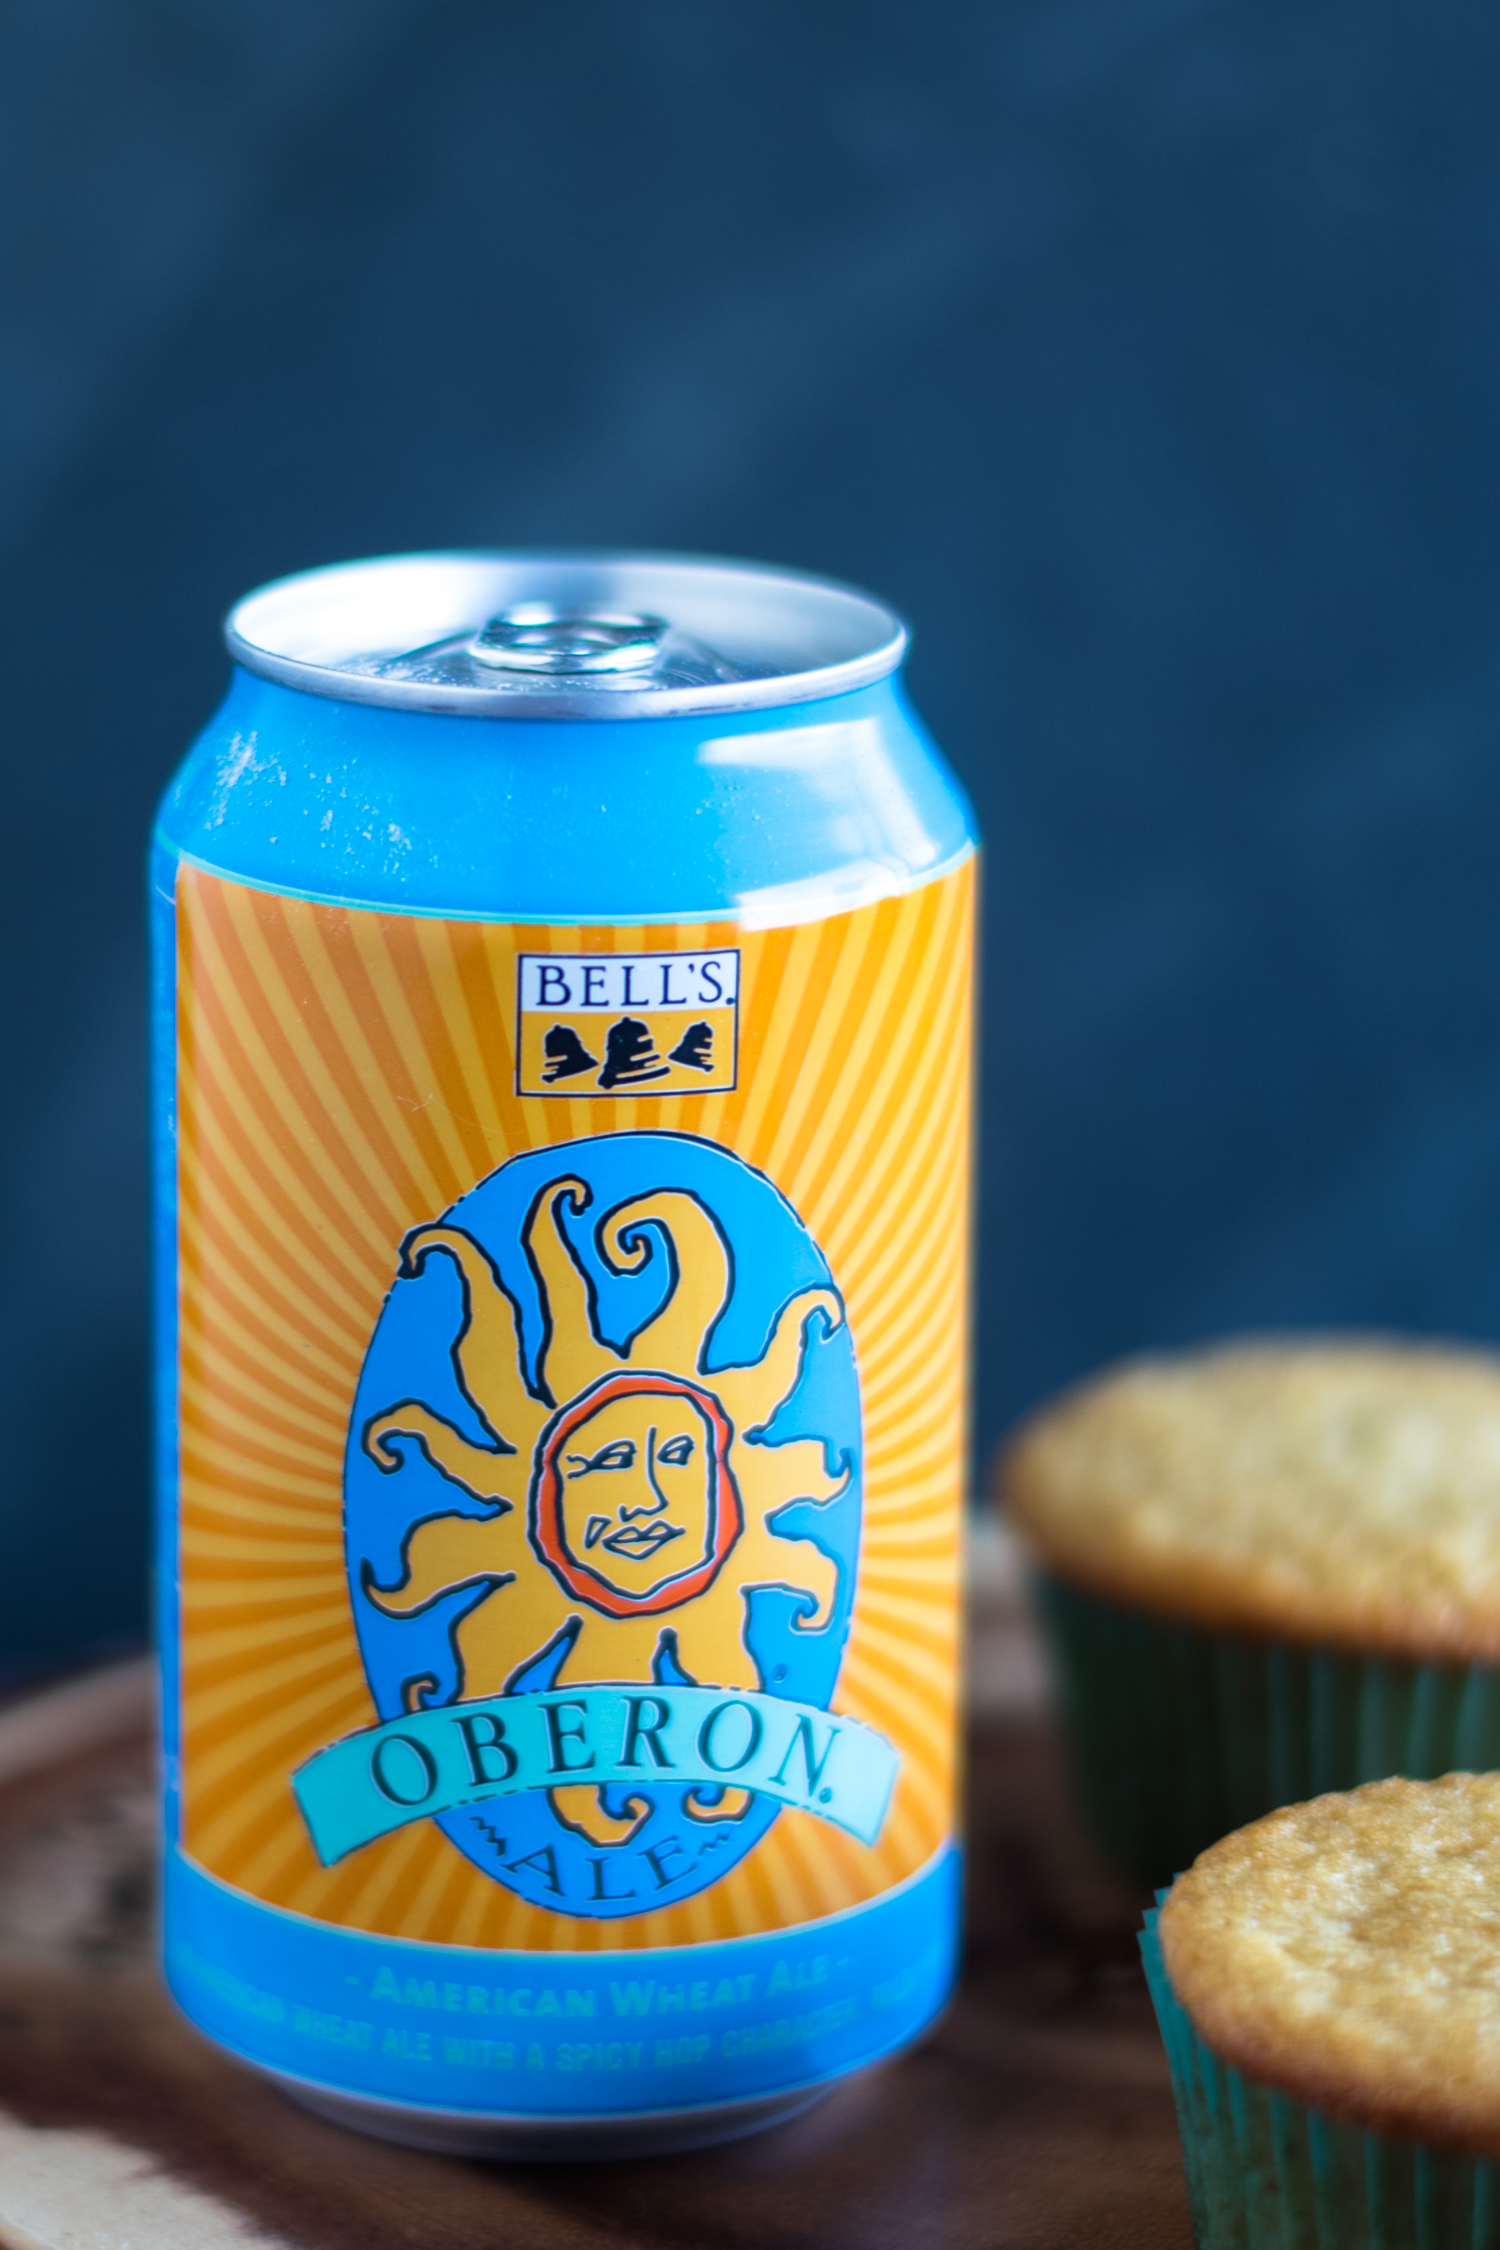 Oberon—a wheat ale made with just four ingredients. Every March Oberon if officially released and people go crazy for it. Oberon release day is the unofficial start of spring here in Michigan! Bell's Eccentric Cafe in Kalamazoo has a big party on release day.